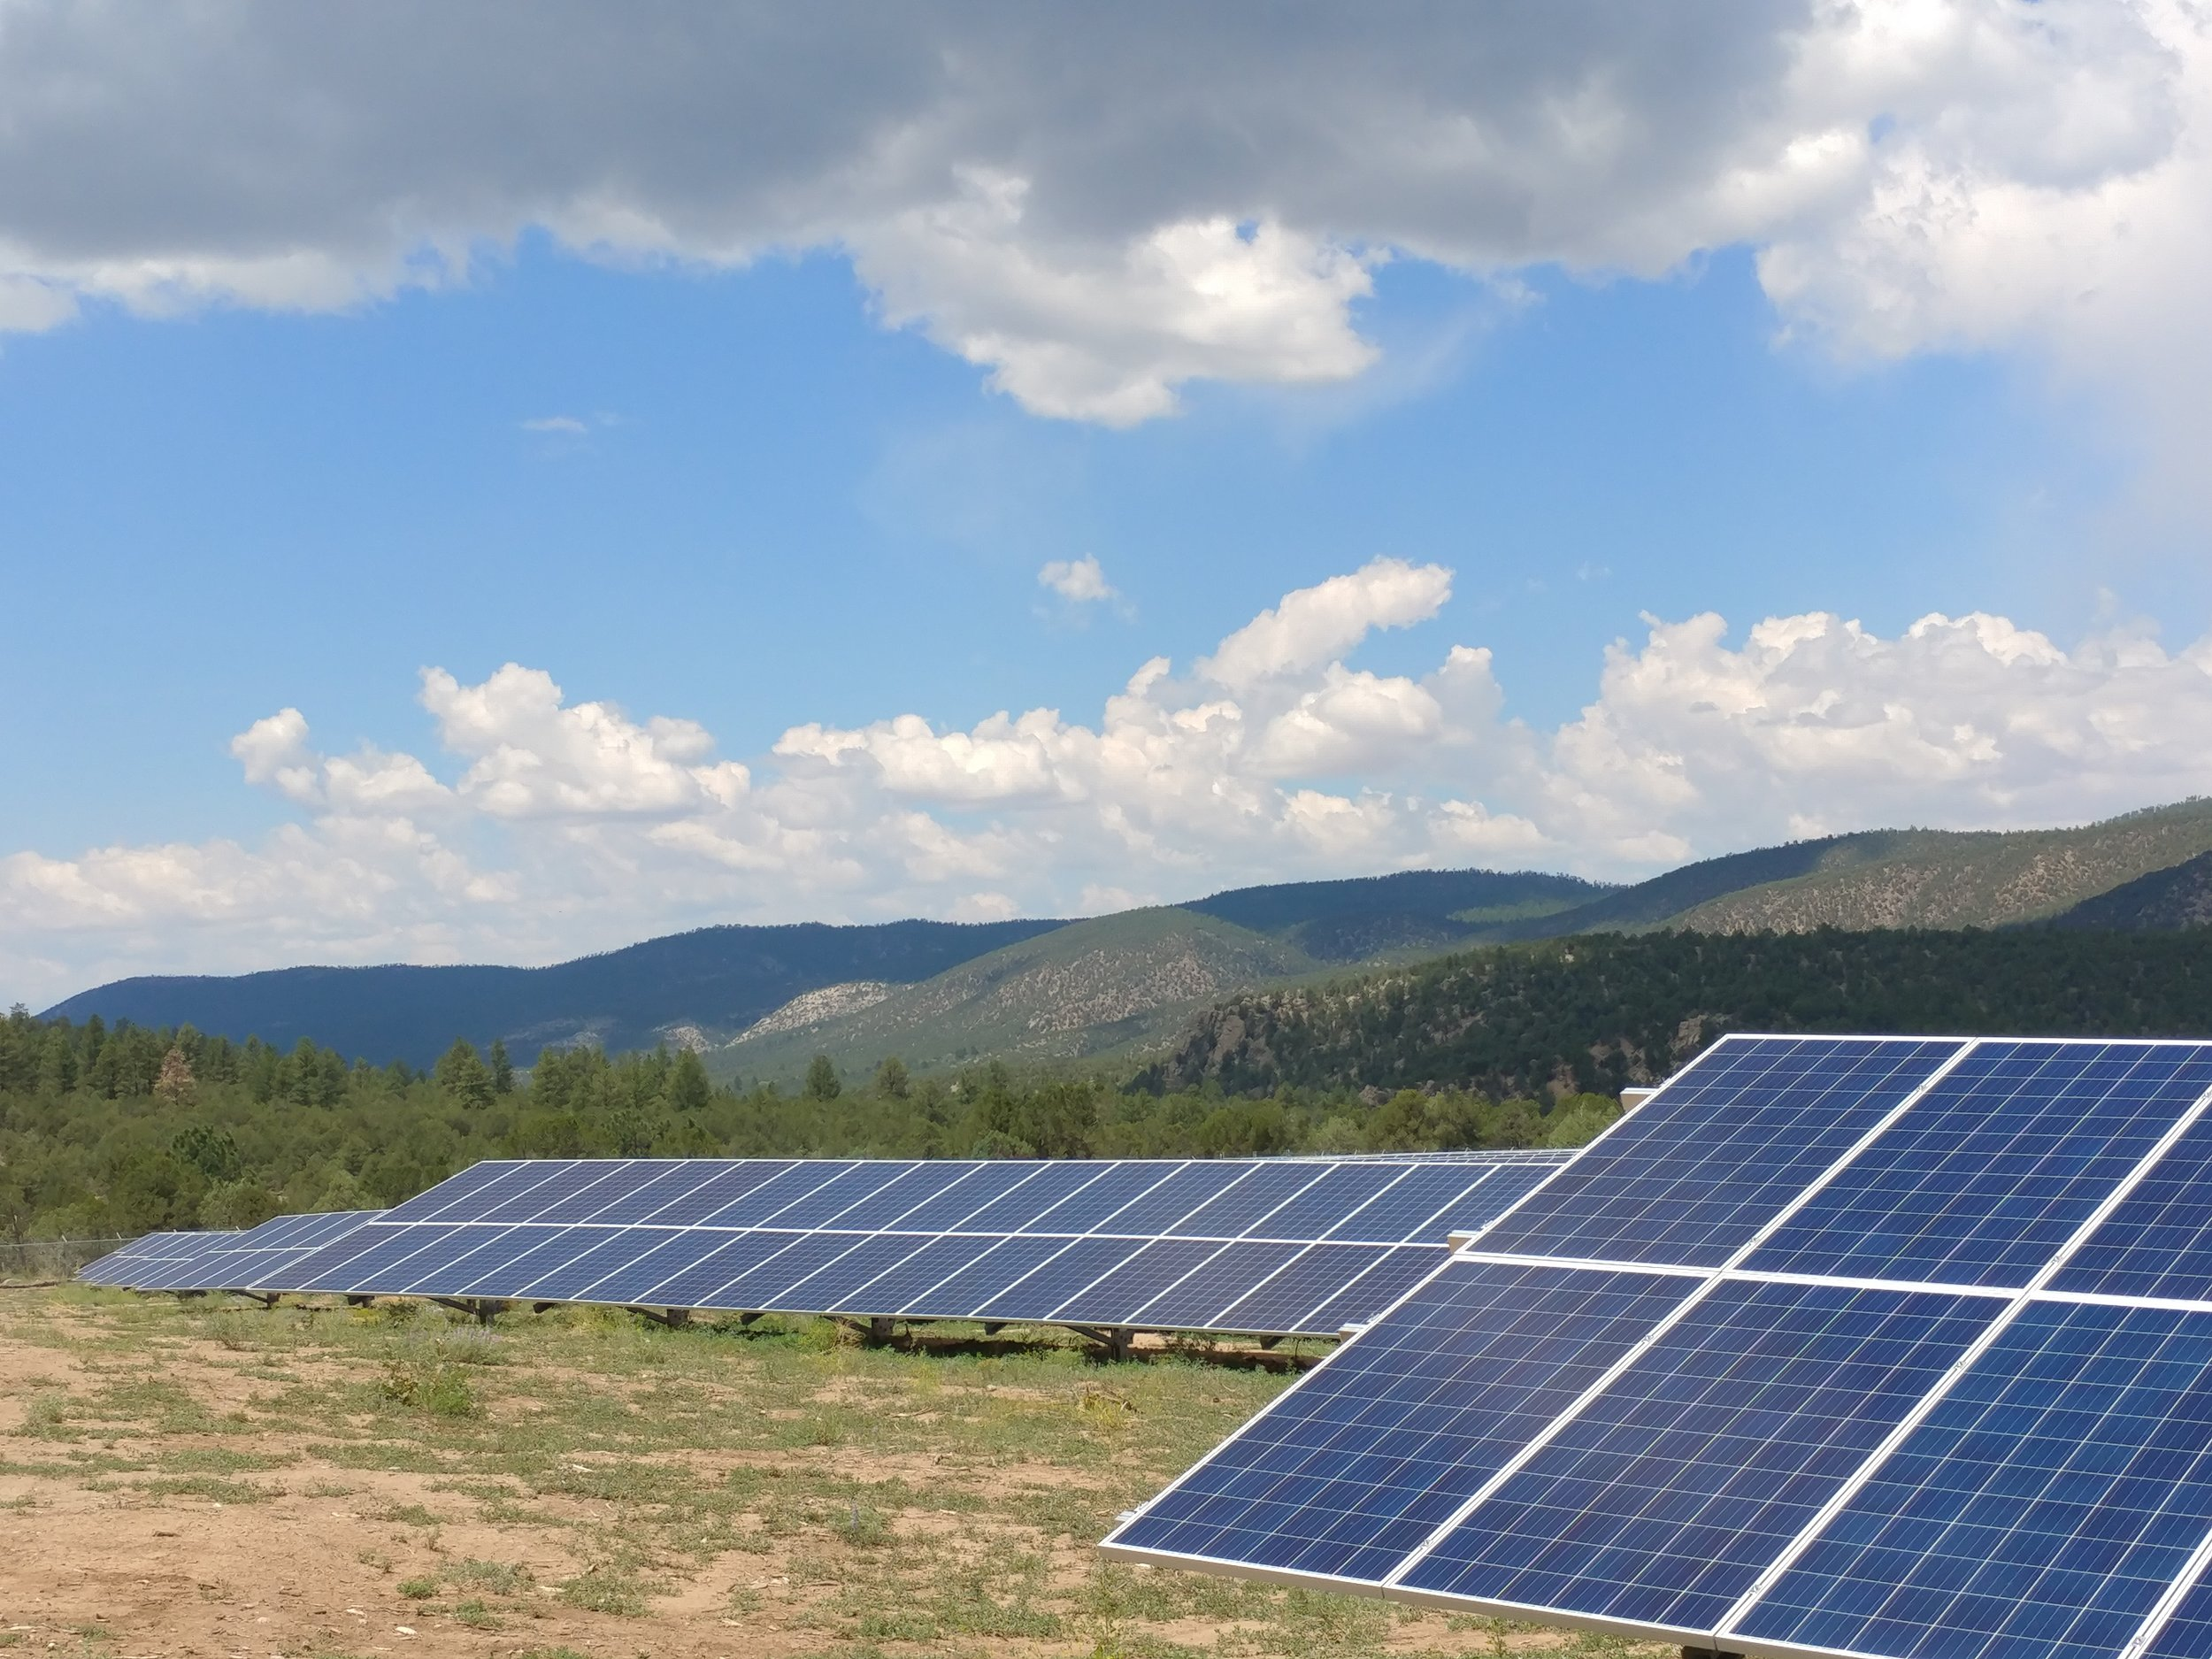 Picuris Pueblo Solar Energy Project